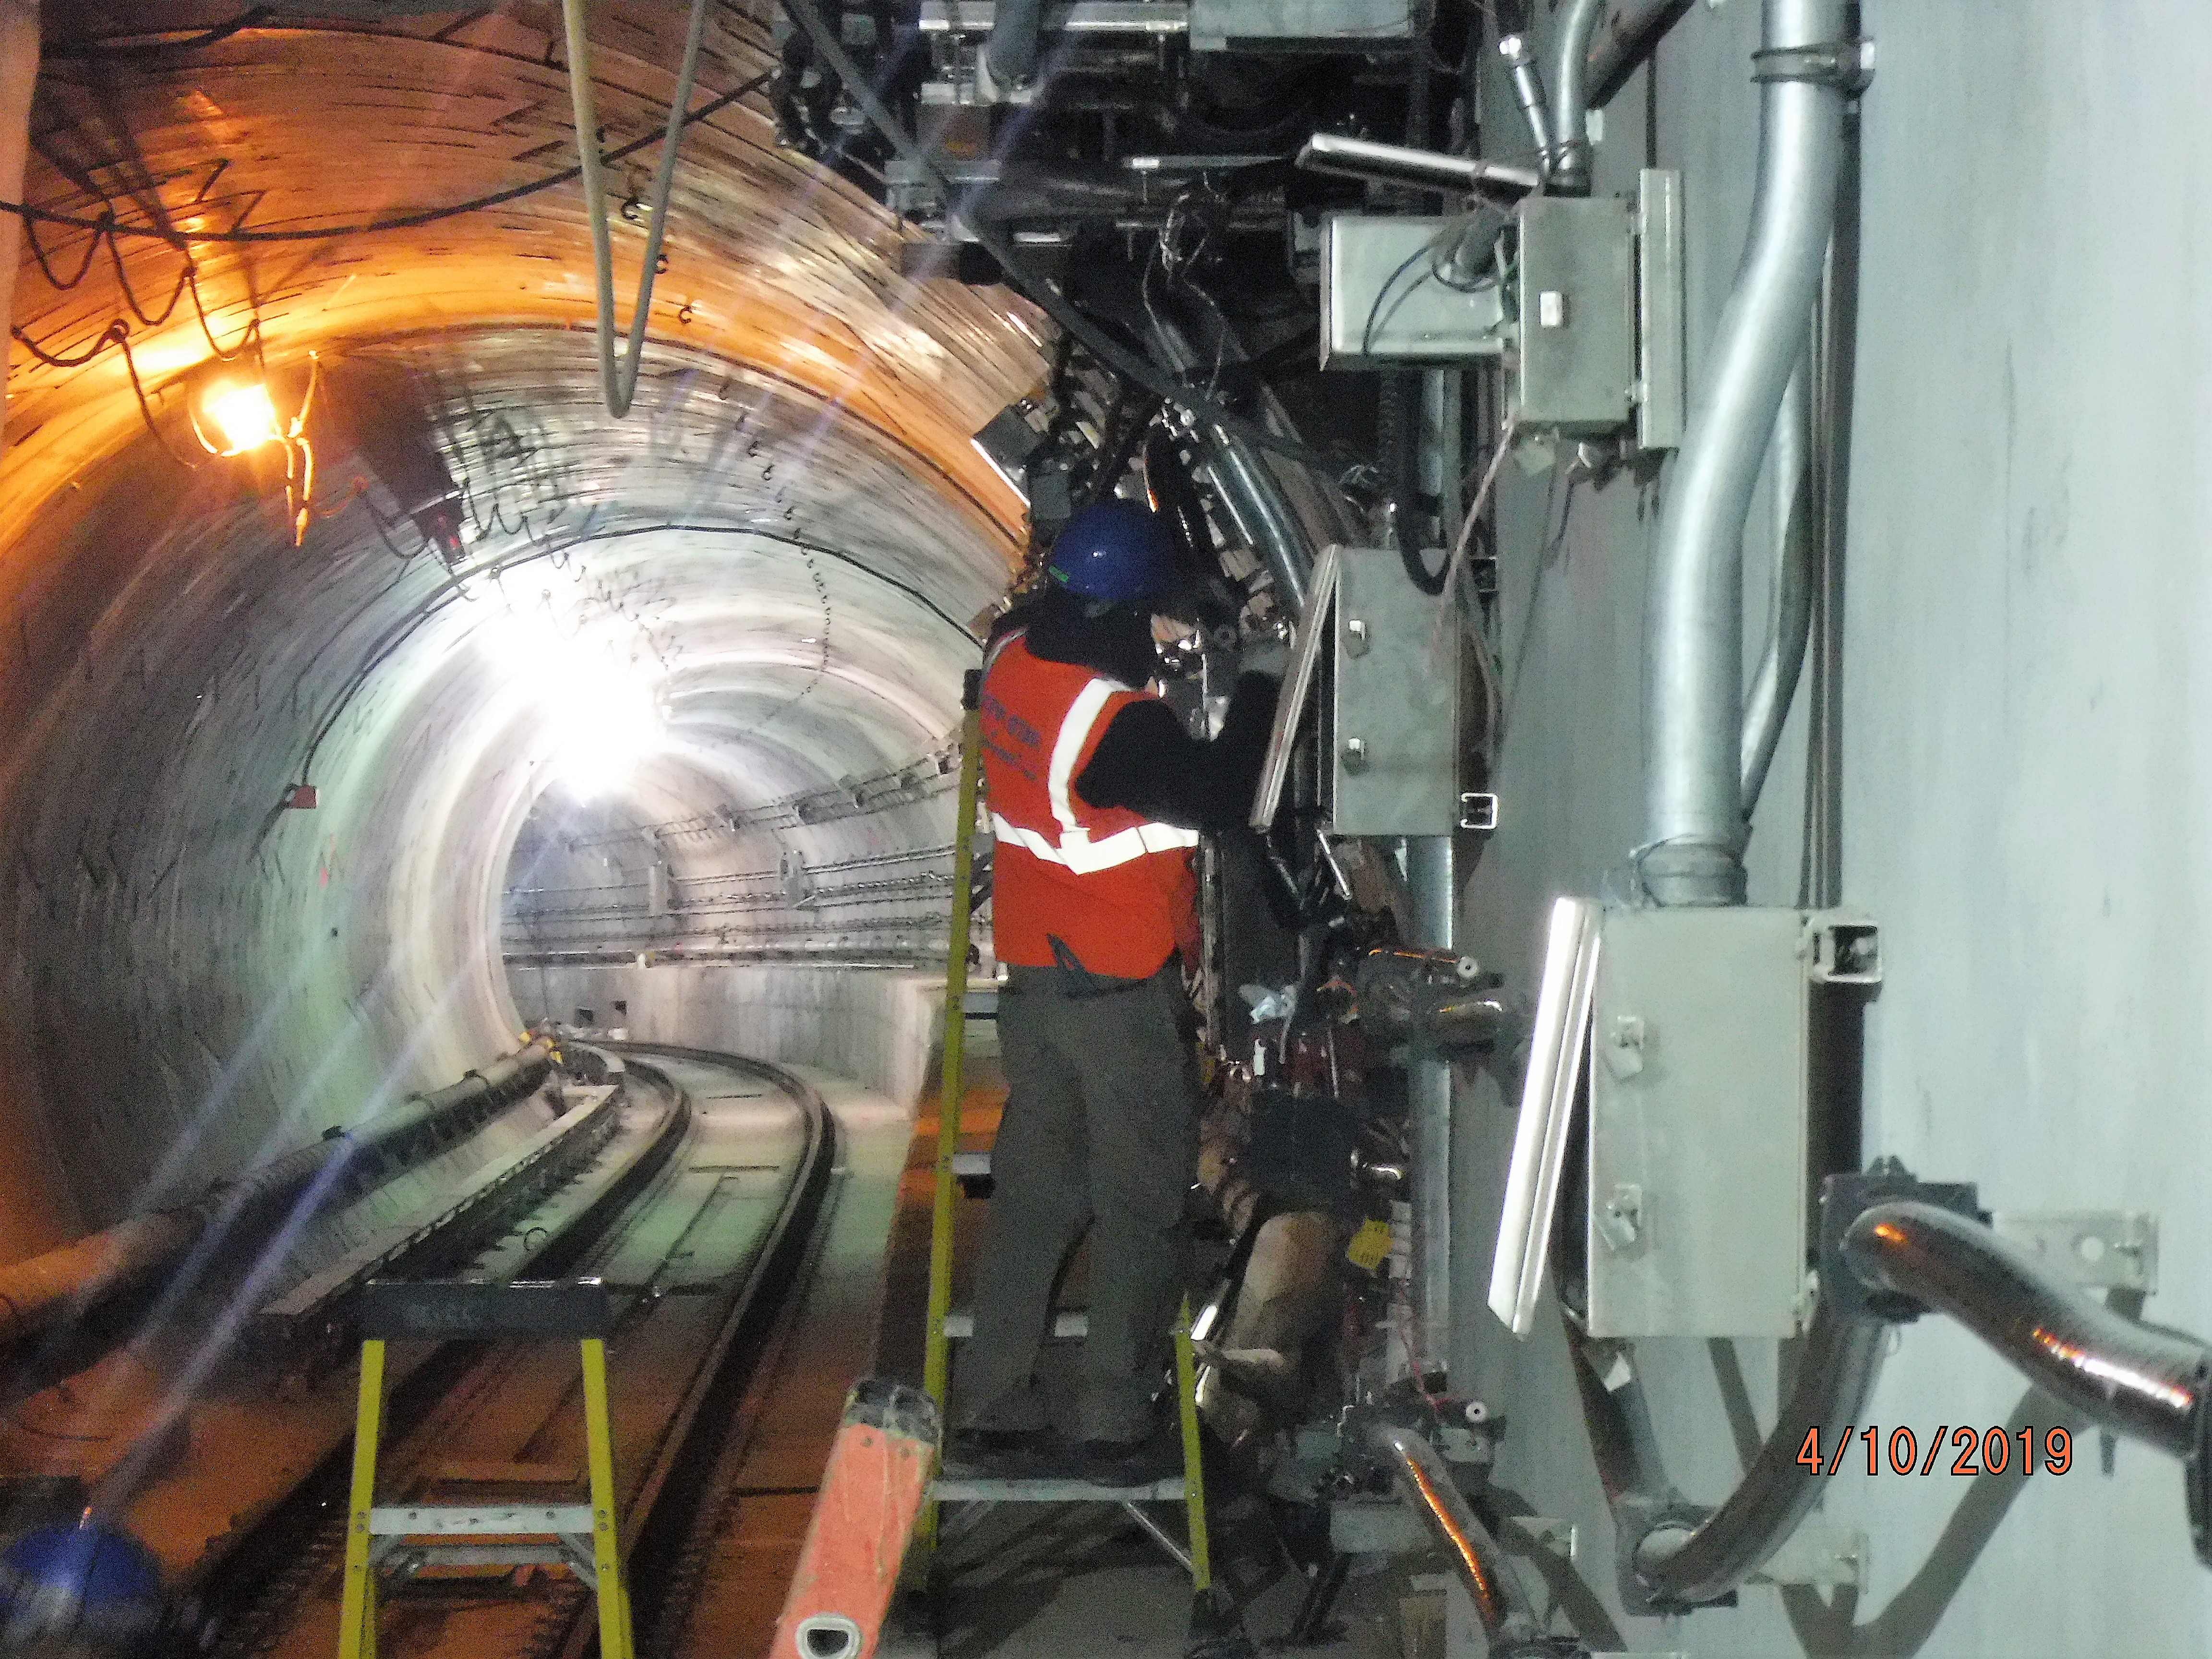 Installation of telecommunication conduit at Tunnel D. 04-12-19